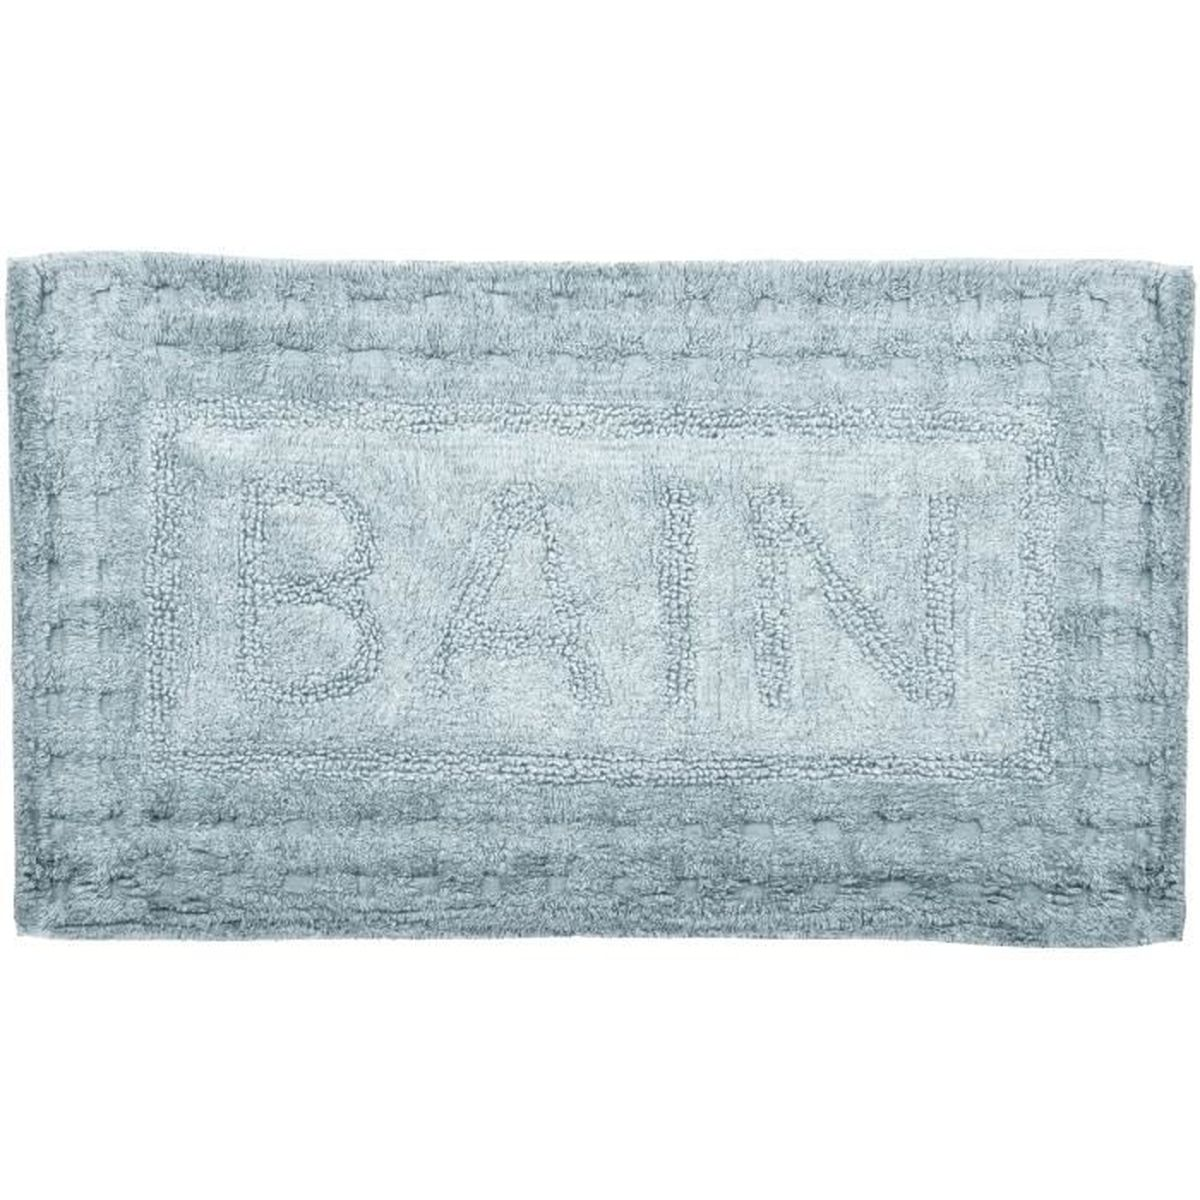 Grand Tapis De Salle De Bain En Coton Inscription Bain Cosy 45x75cm Gris